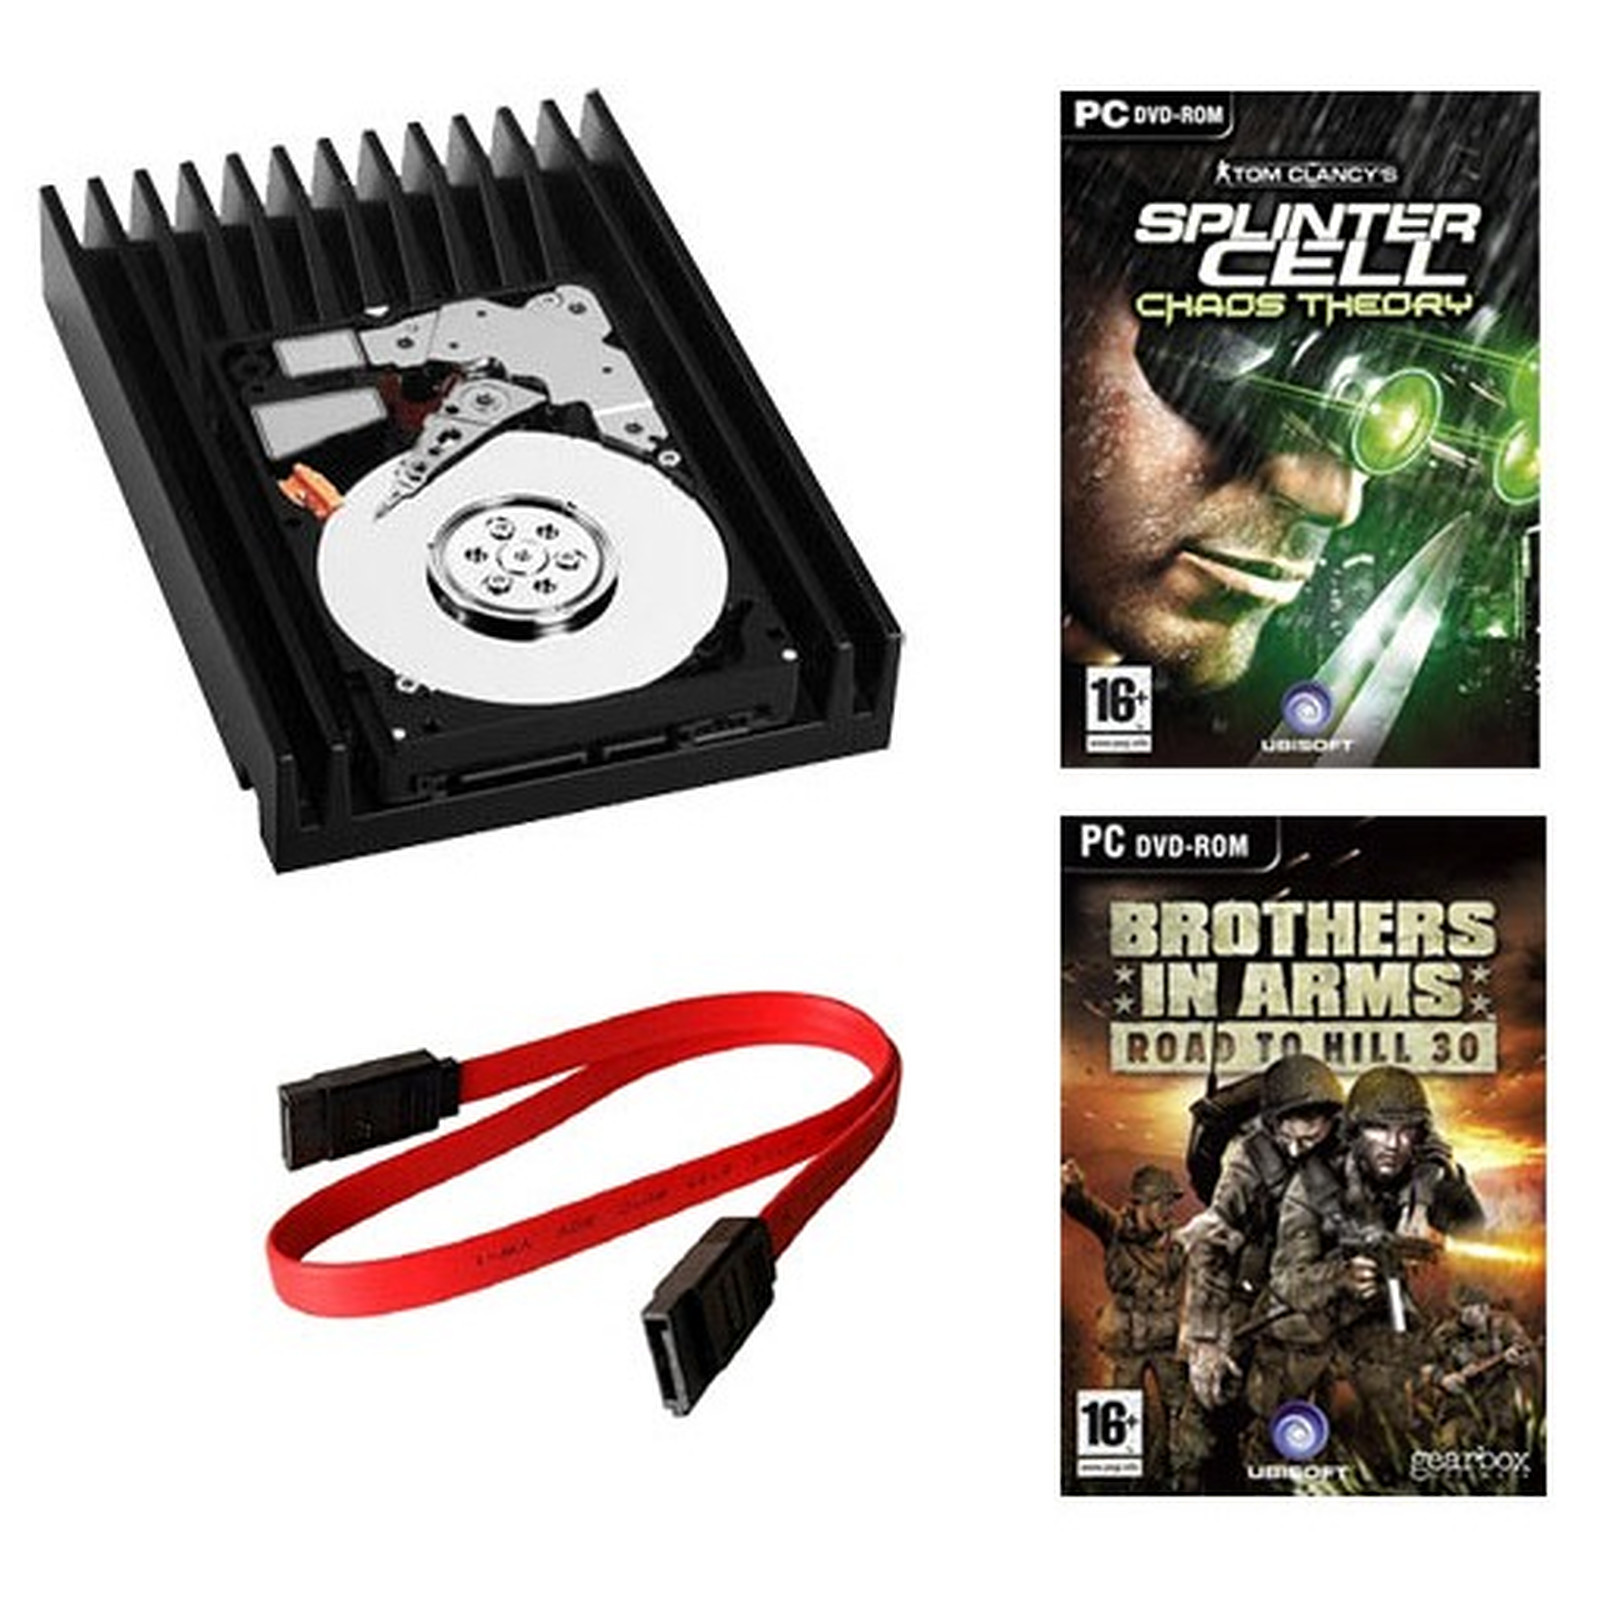 Western Digital VelociRaptor 150 Go 10000 RPM 16 Mo Serial ATA II - WD1500HLFS (bulk) + Câble SATA (45 cm) + Jeux Splinter Cell : Chaos Theory & Brothers in Arms